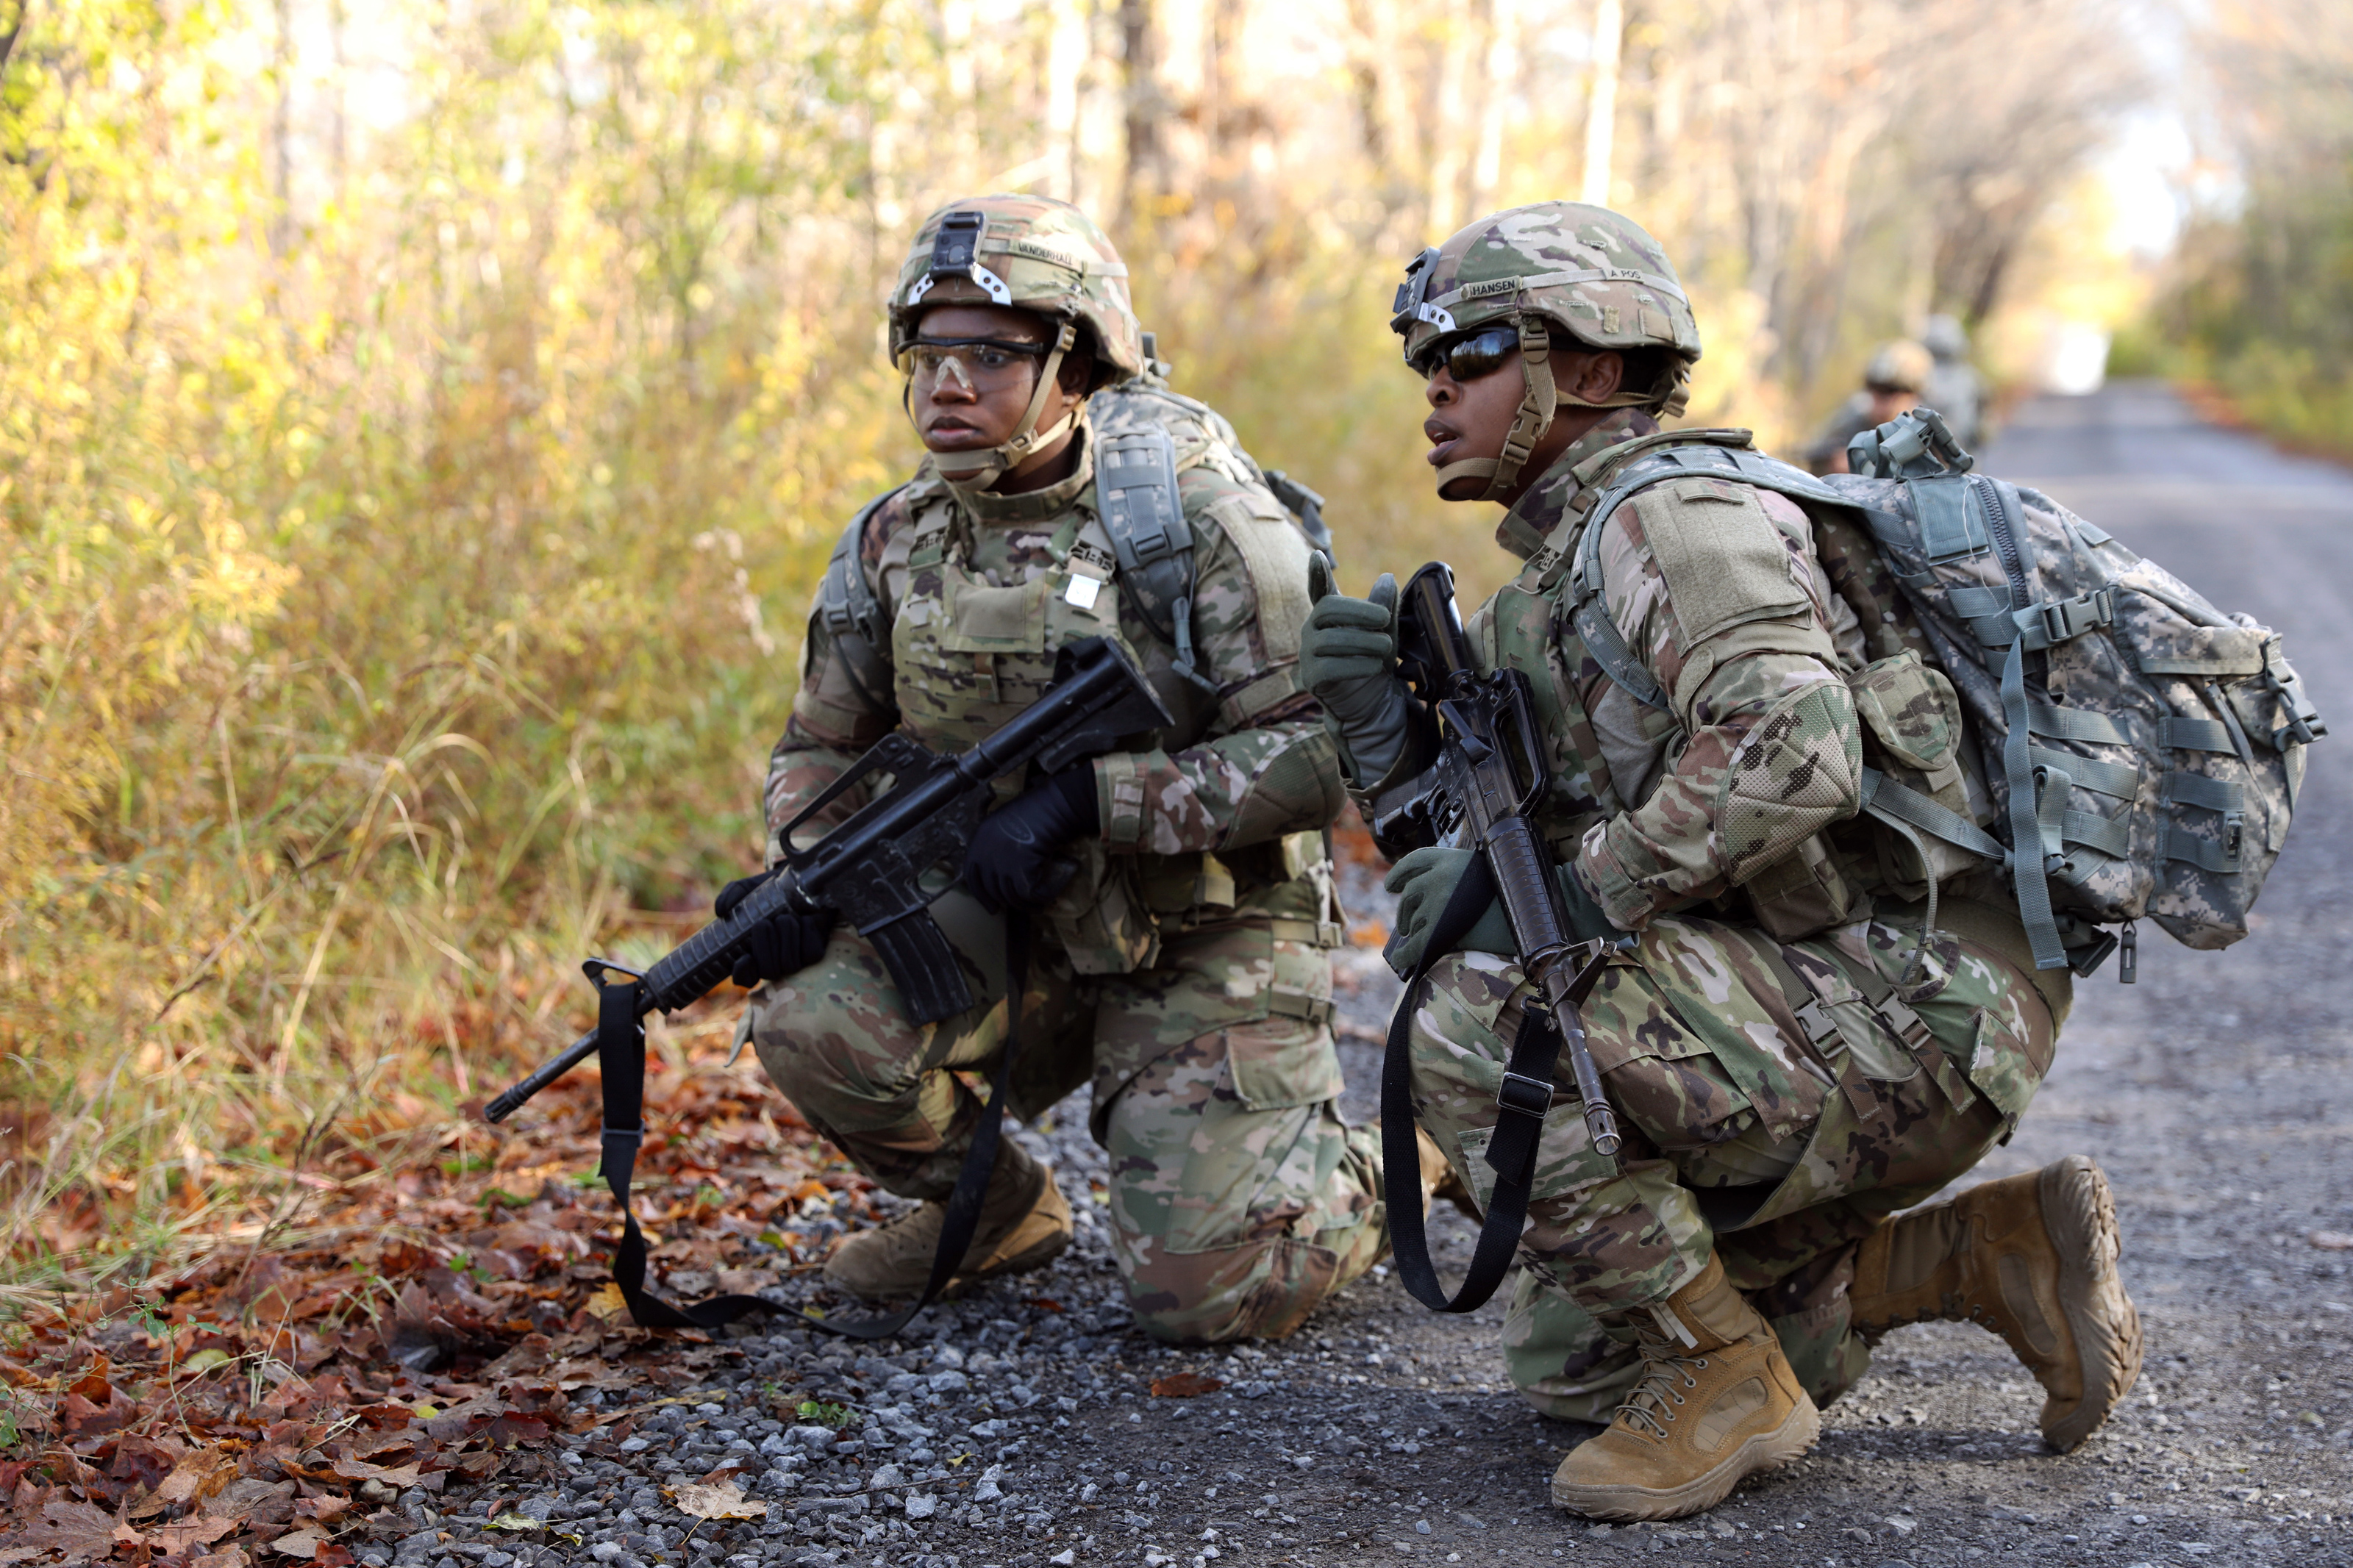 Lawmakers Are Fighting for Better-Fitting Female Body Armor for US Troops